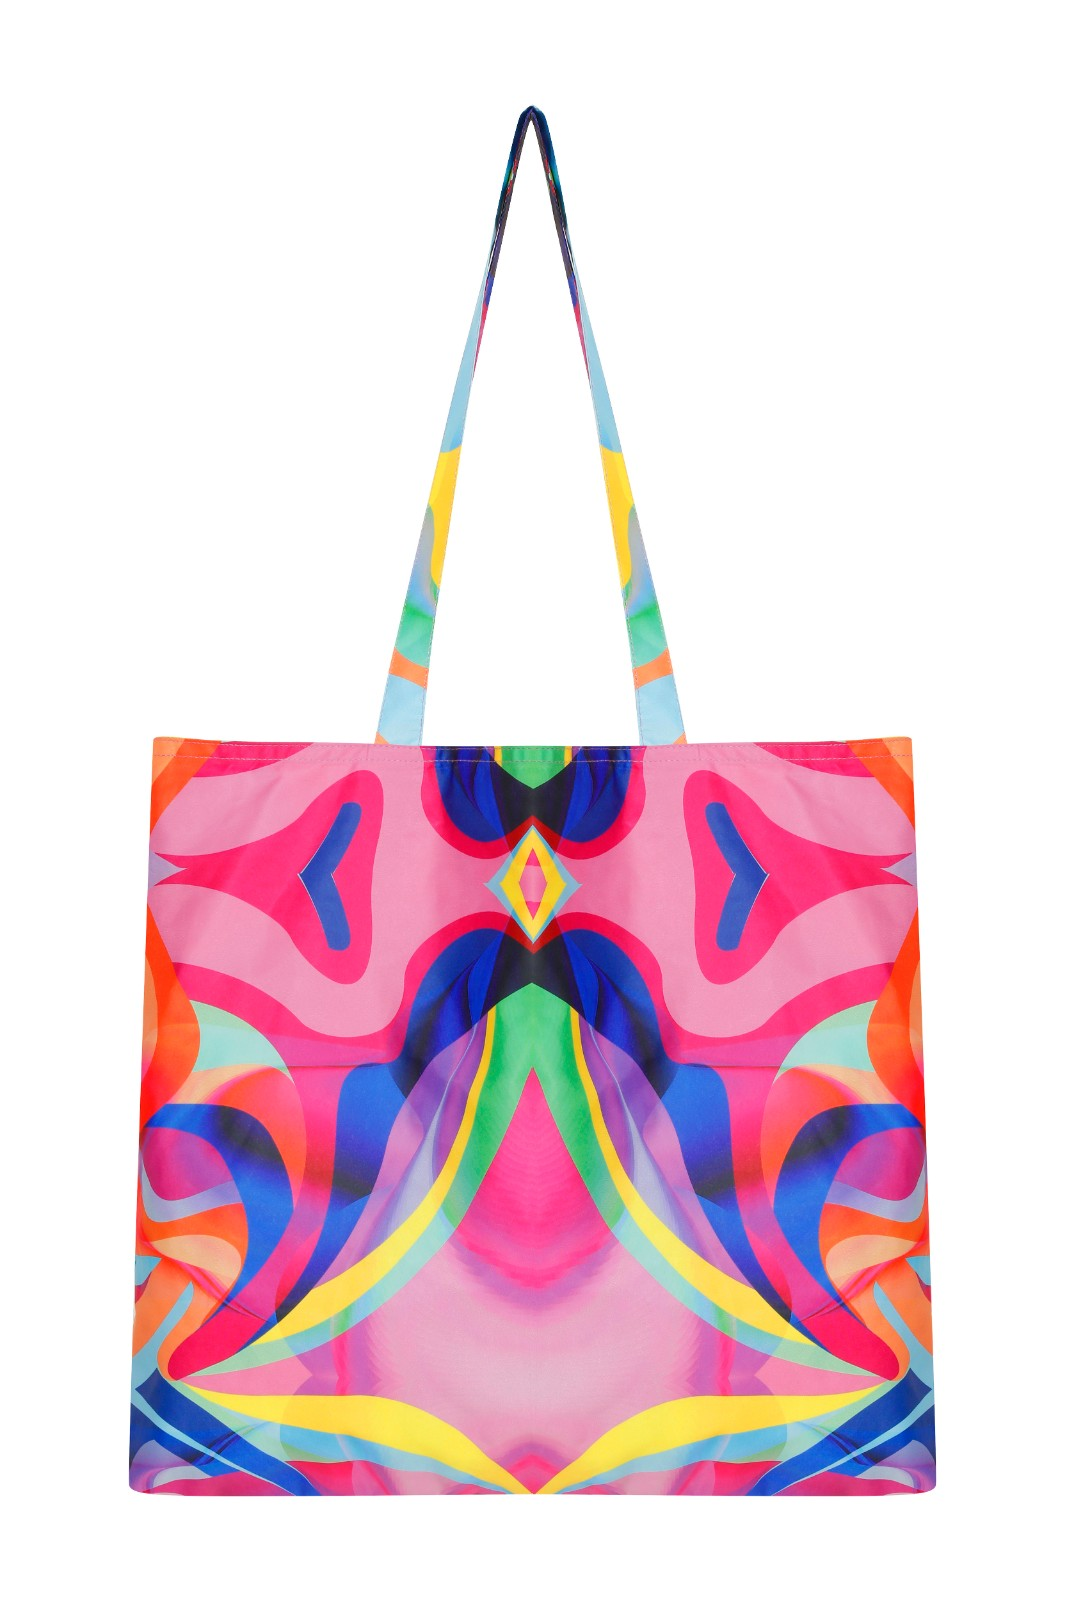 Large Size Graphic Tote Bag  image no:1